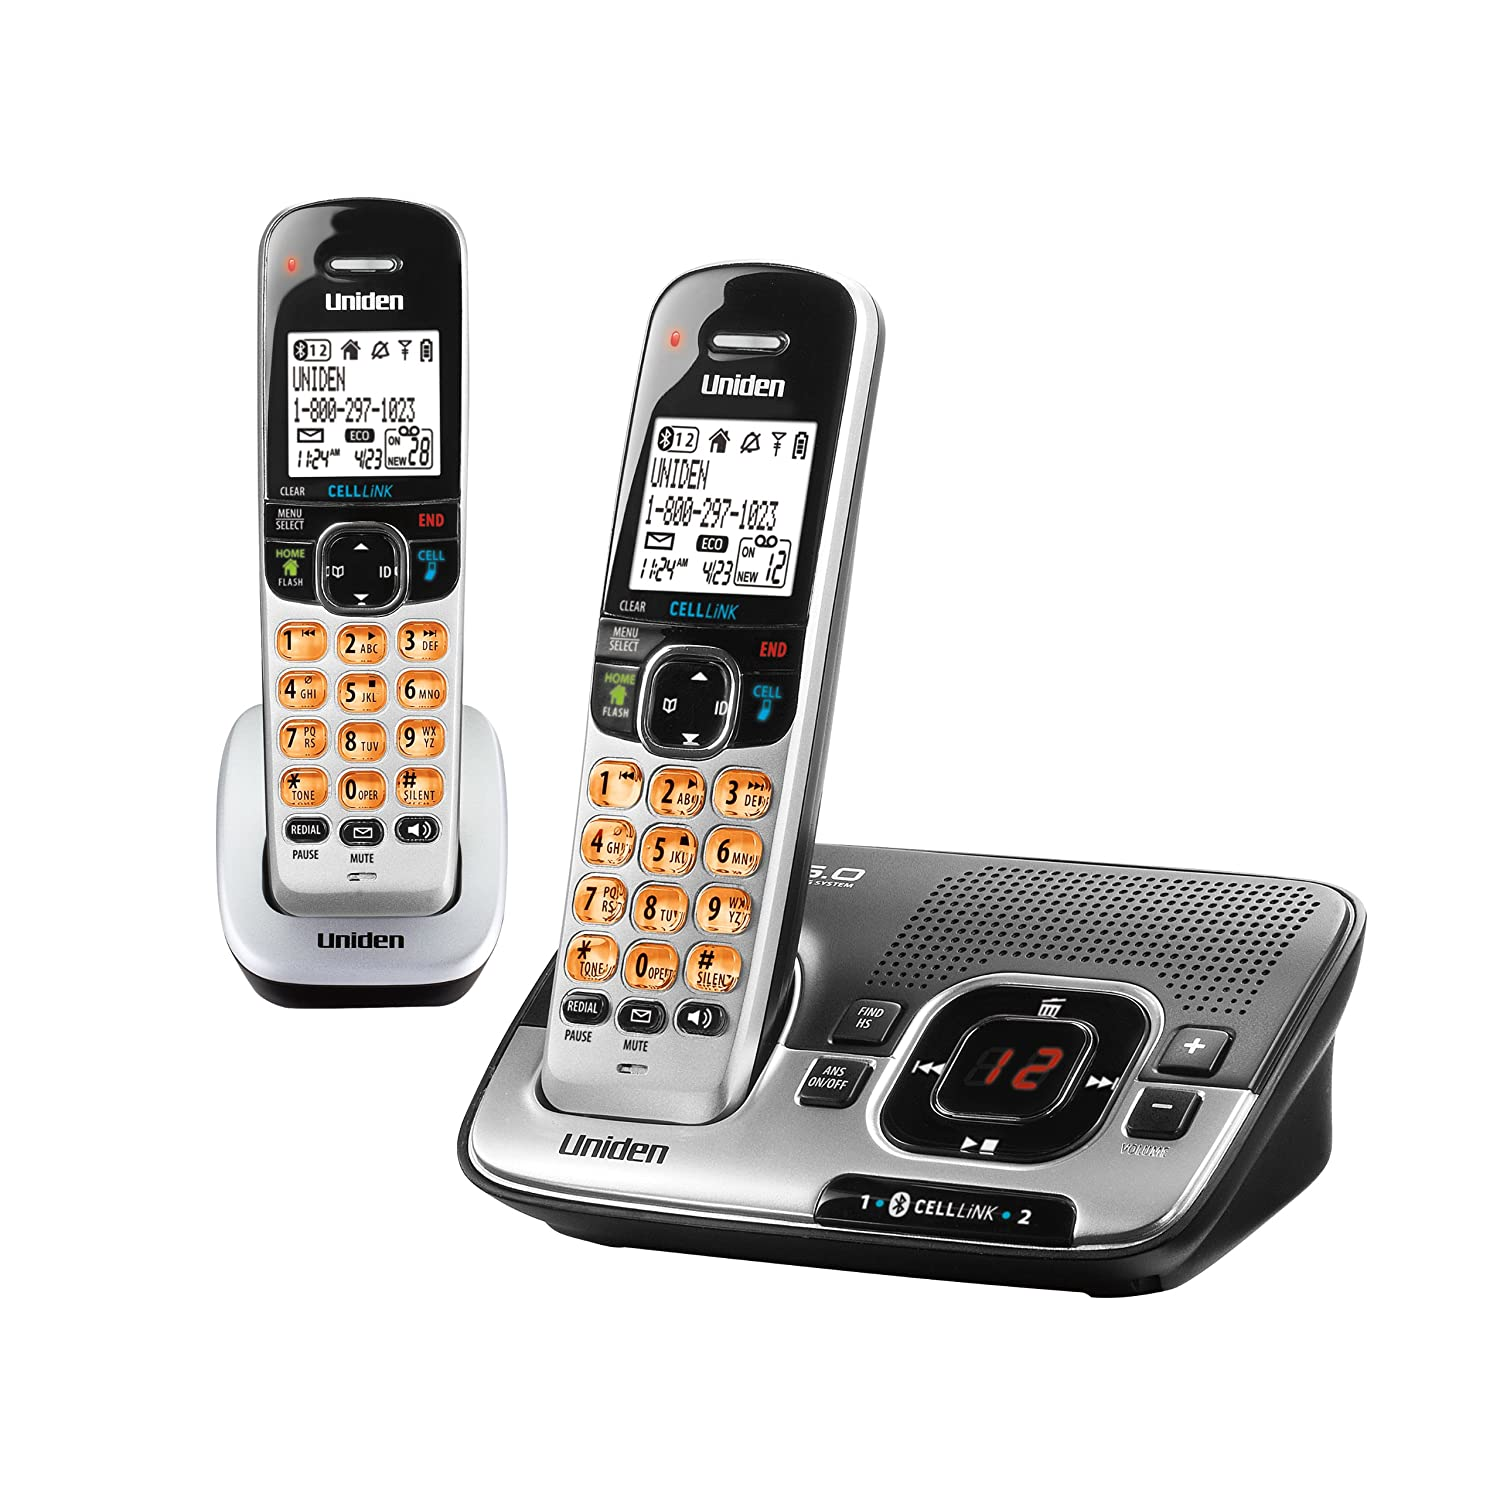 Amazon.com : D1780-2BT DECT 6.0 Expandable Cordless Phone with Digital  Answering System and Bluetooth CELLLiNK, Silver, 2 Handsets : Cordless  Telephones ...